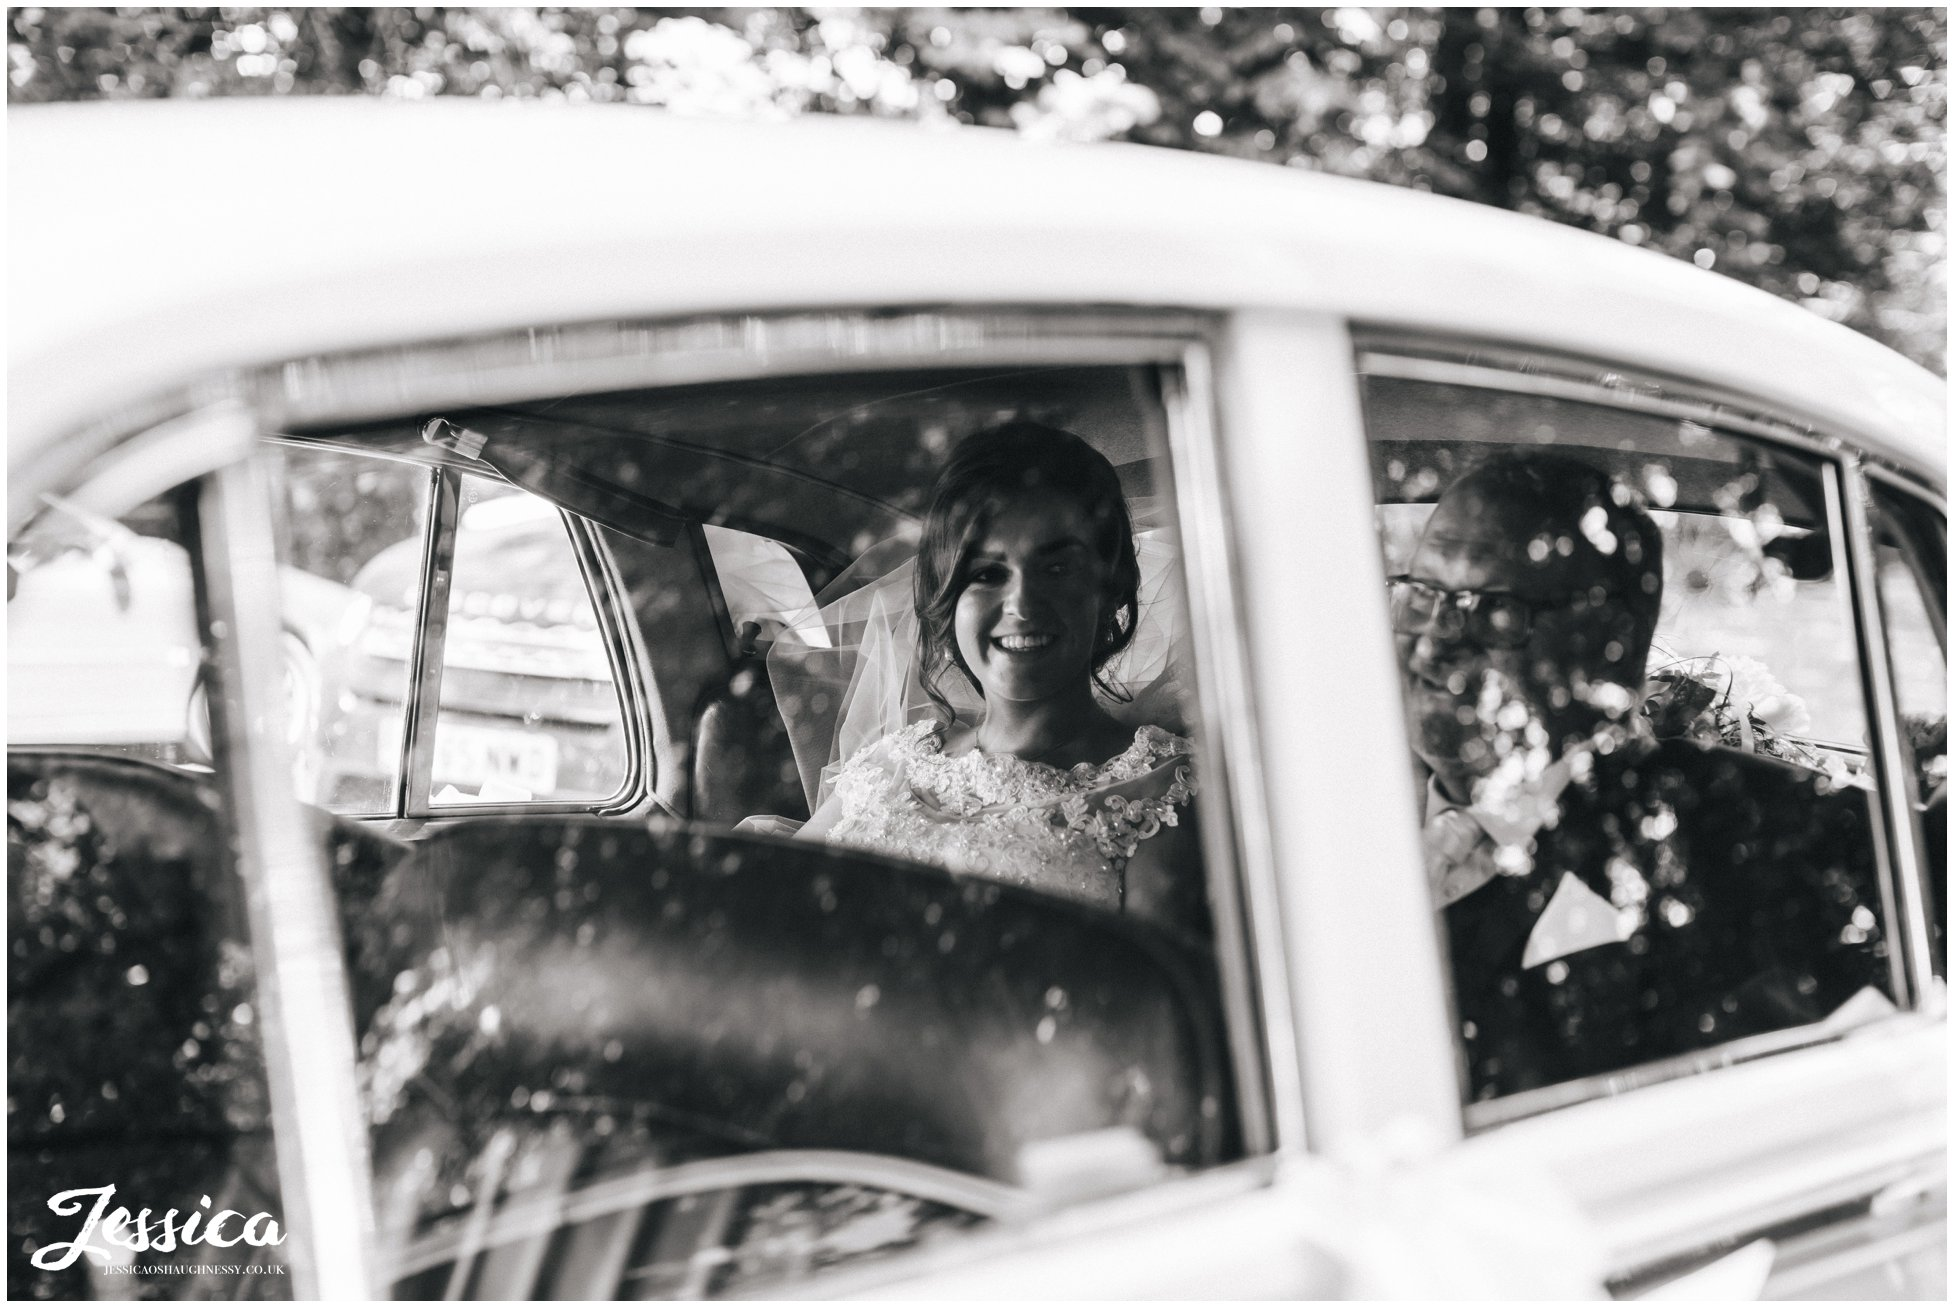 the bride arrives at the lancashire church in the vintage wedding car